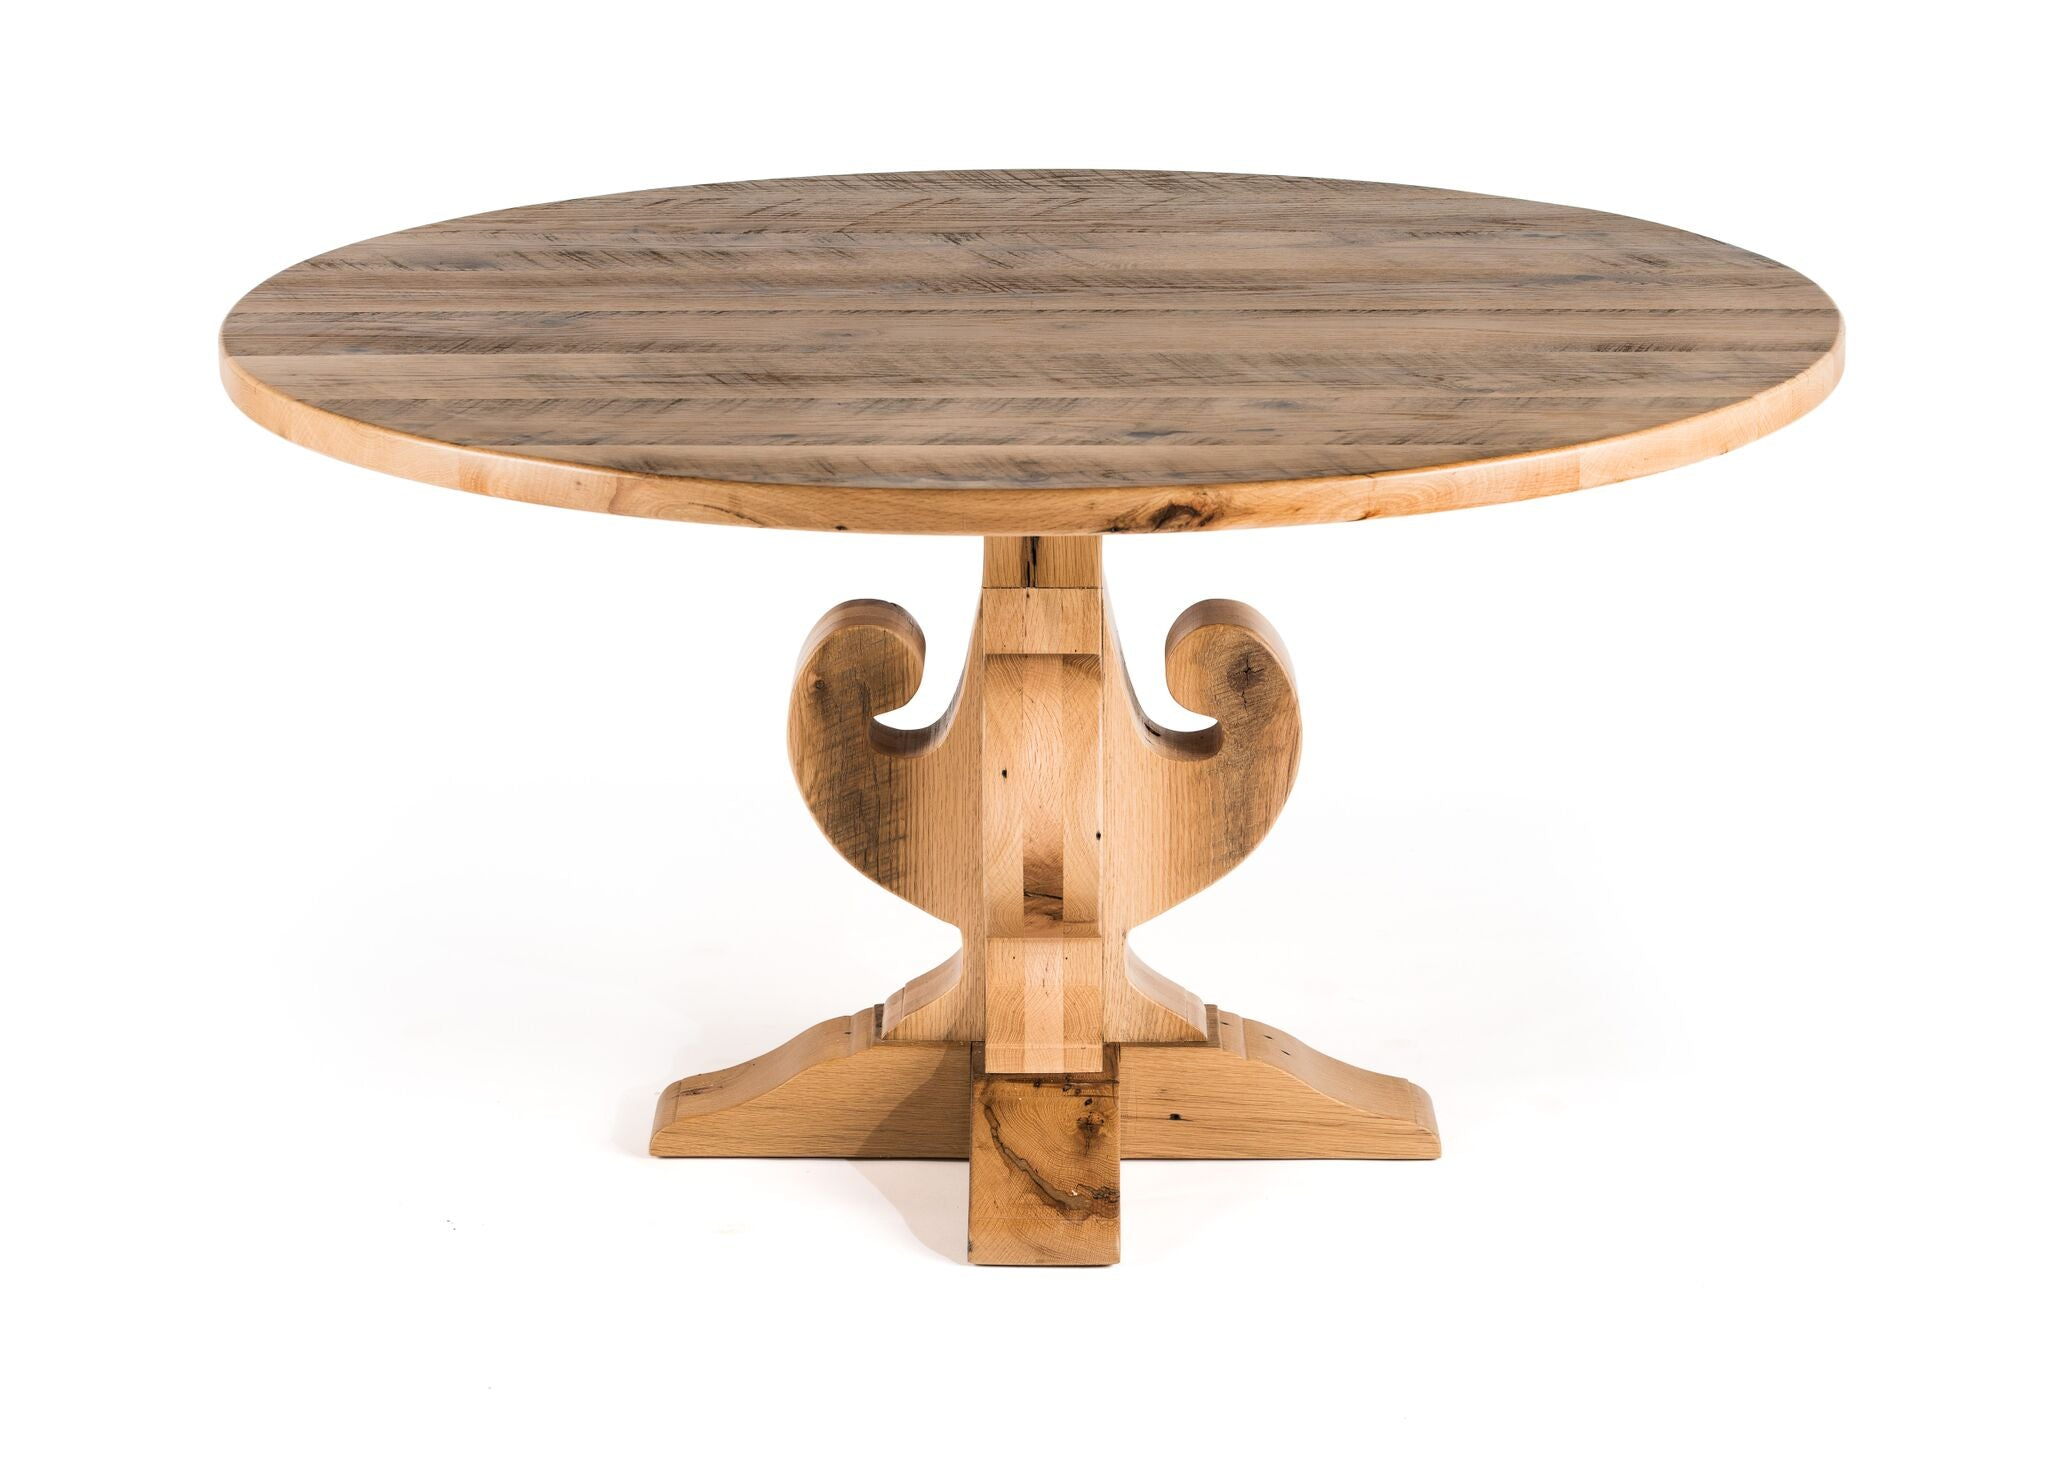 "Round Wood Tables | Fairfield Trestle Table | Natural Ash | Natural Reclaimed Oak | Diameter 42 |  Height 30 | 1.5"" Standard"